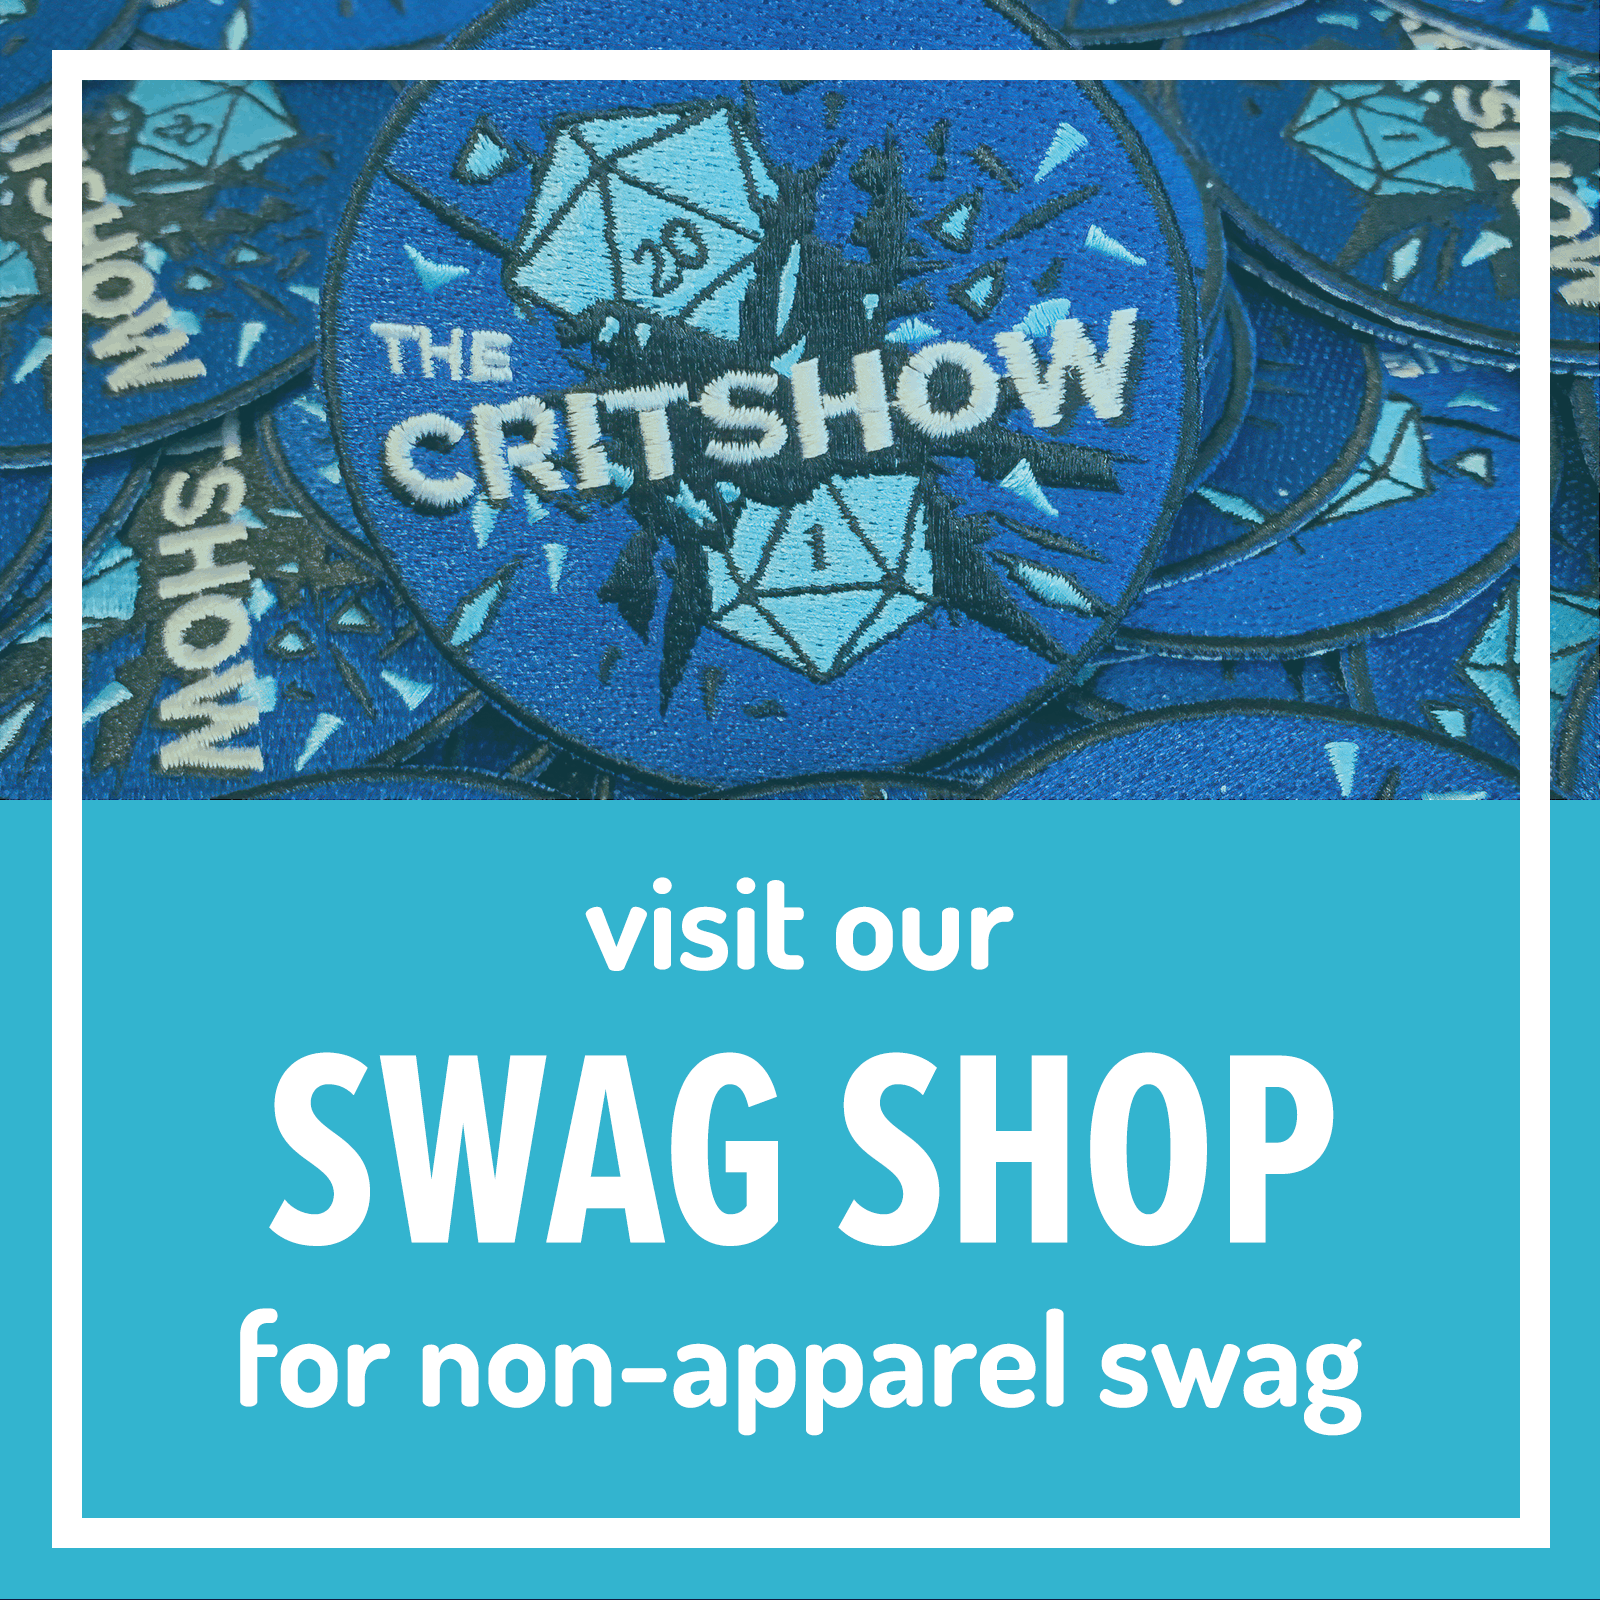 the Swag Shop for non-apparel swag